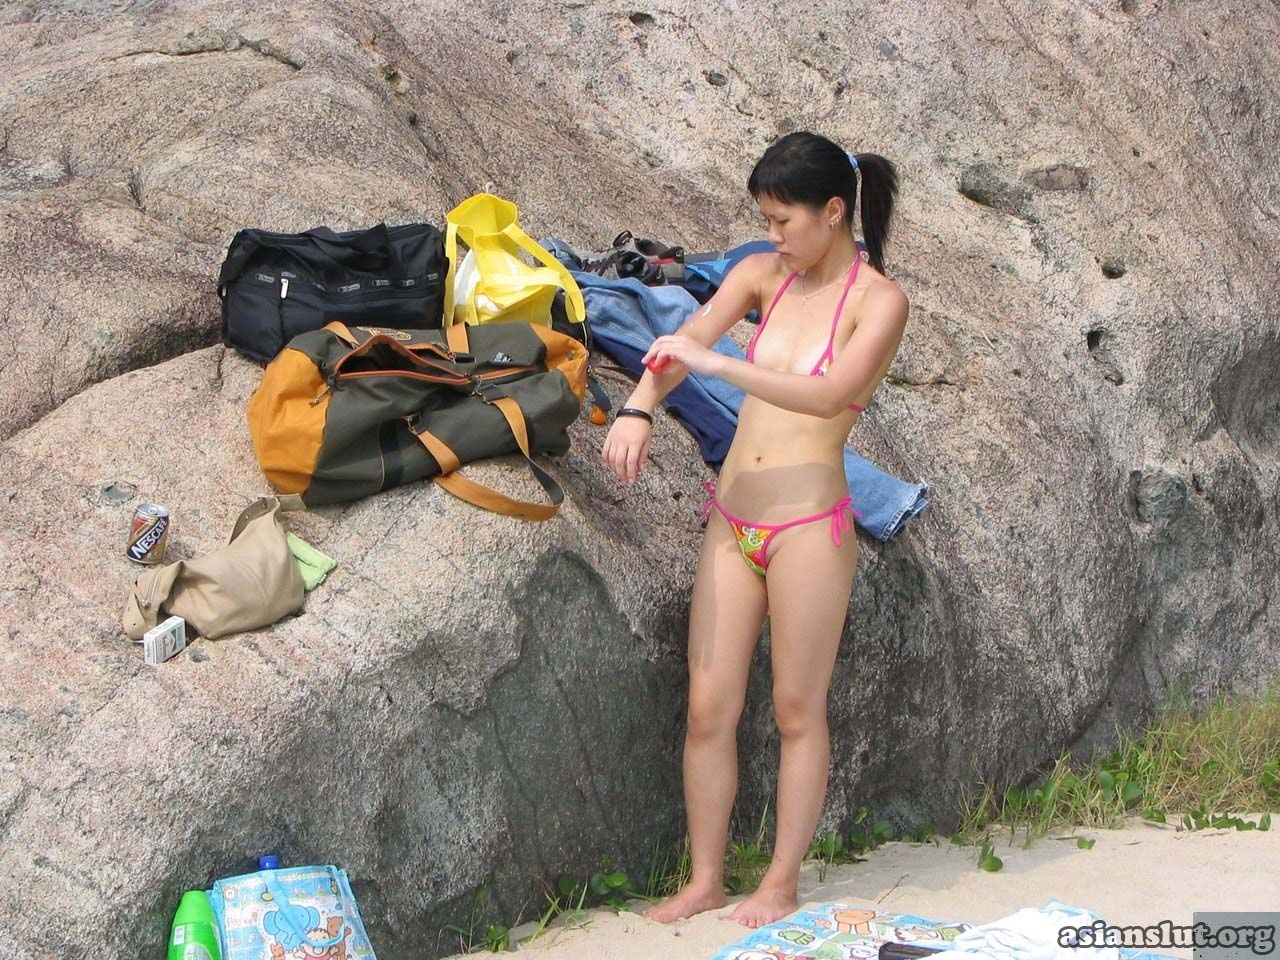 slutty asian lady expose her breast and hairy pussy outdoor asian